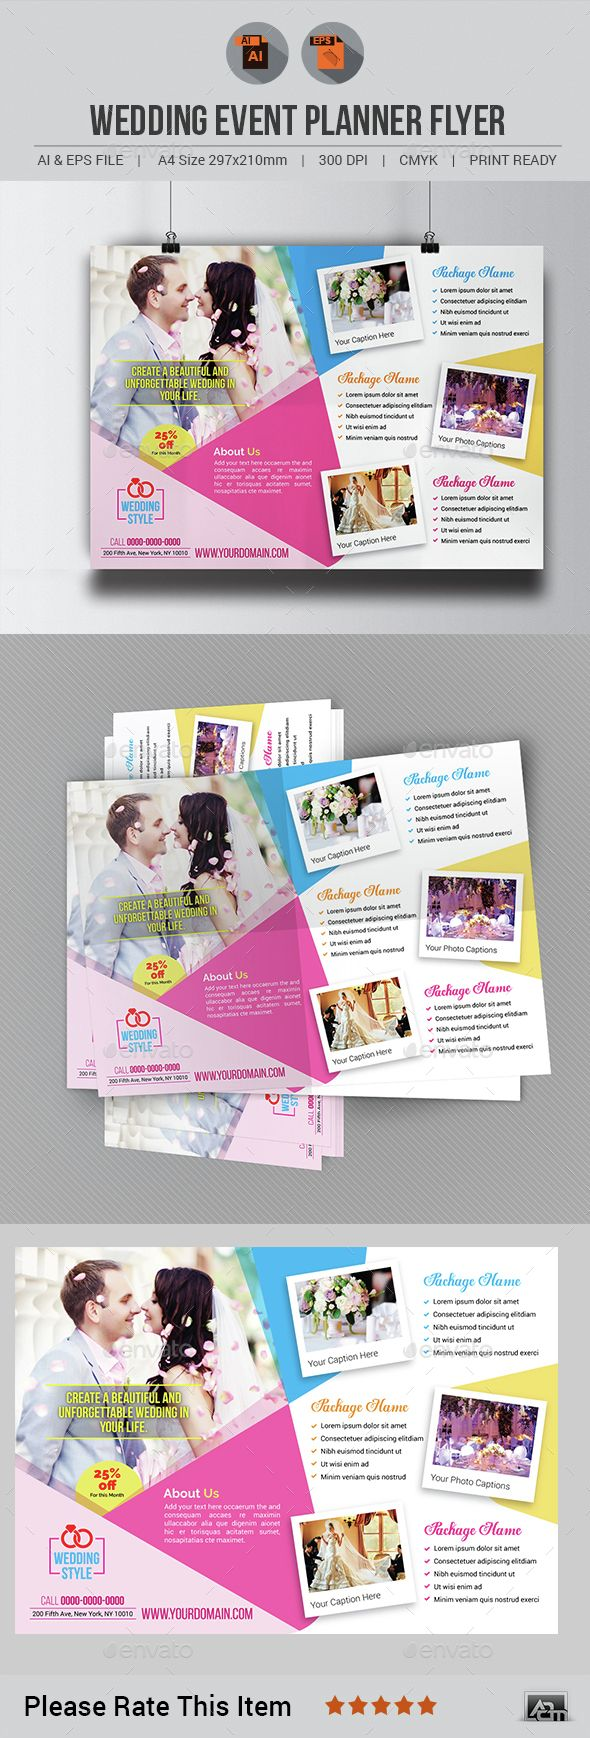 wedding event planner flyer wedding event planner planners and